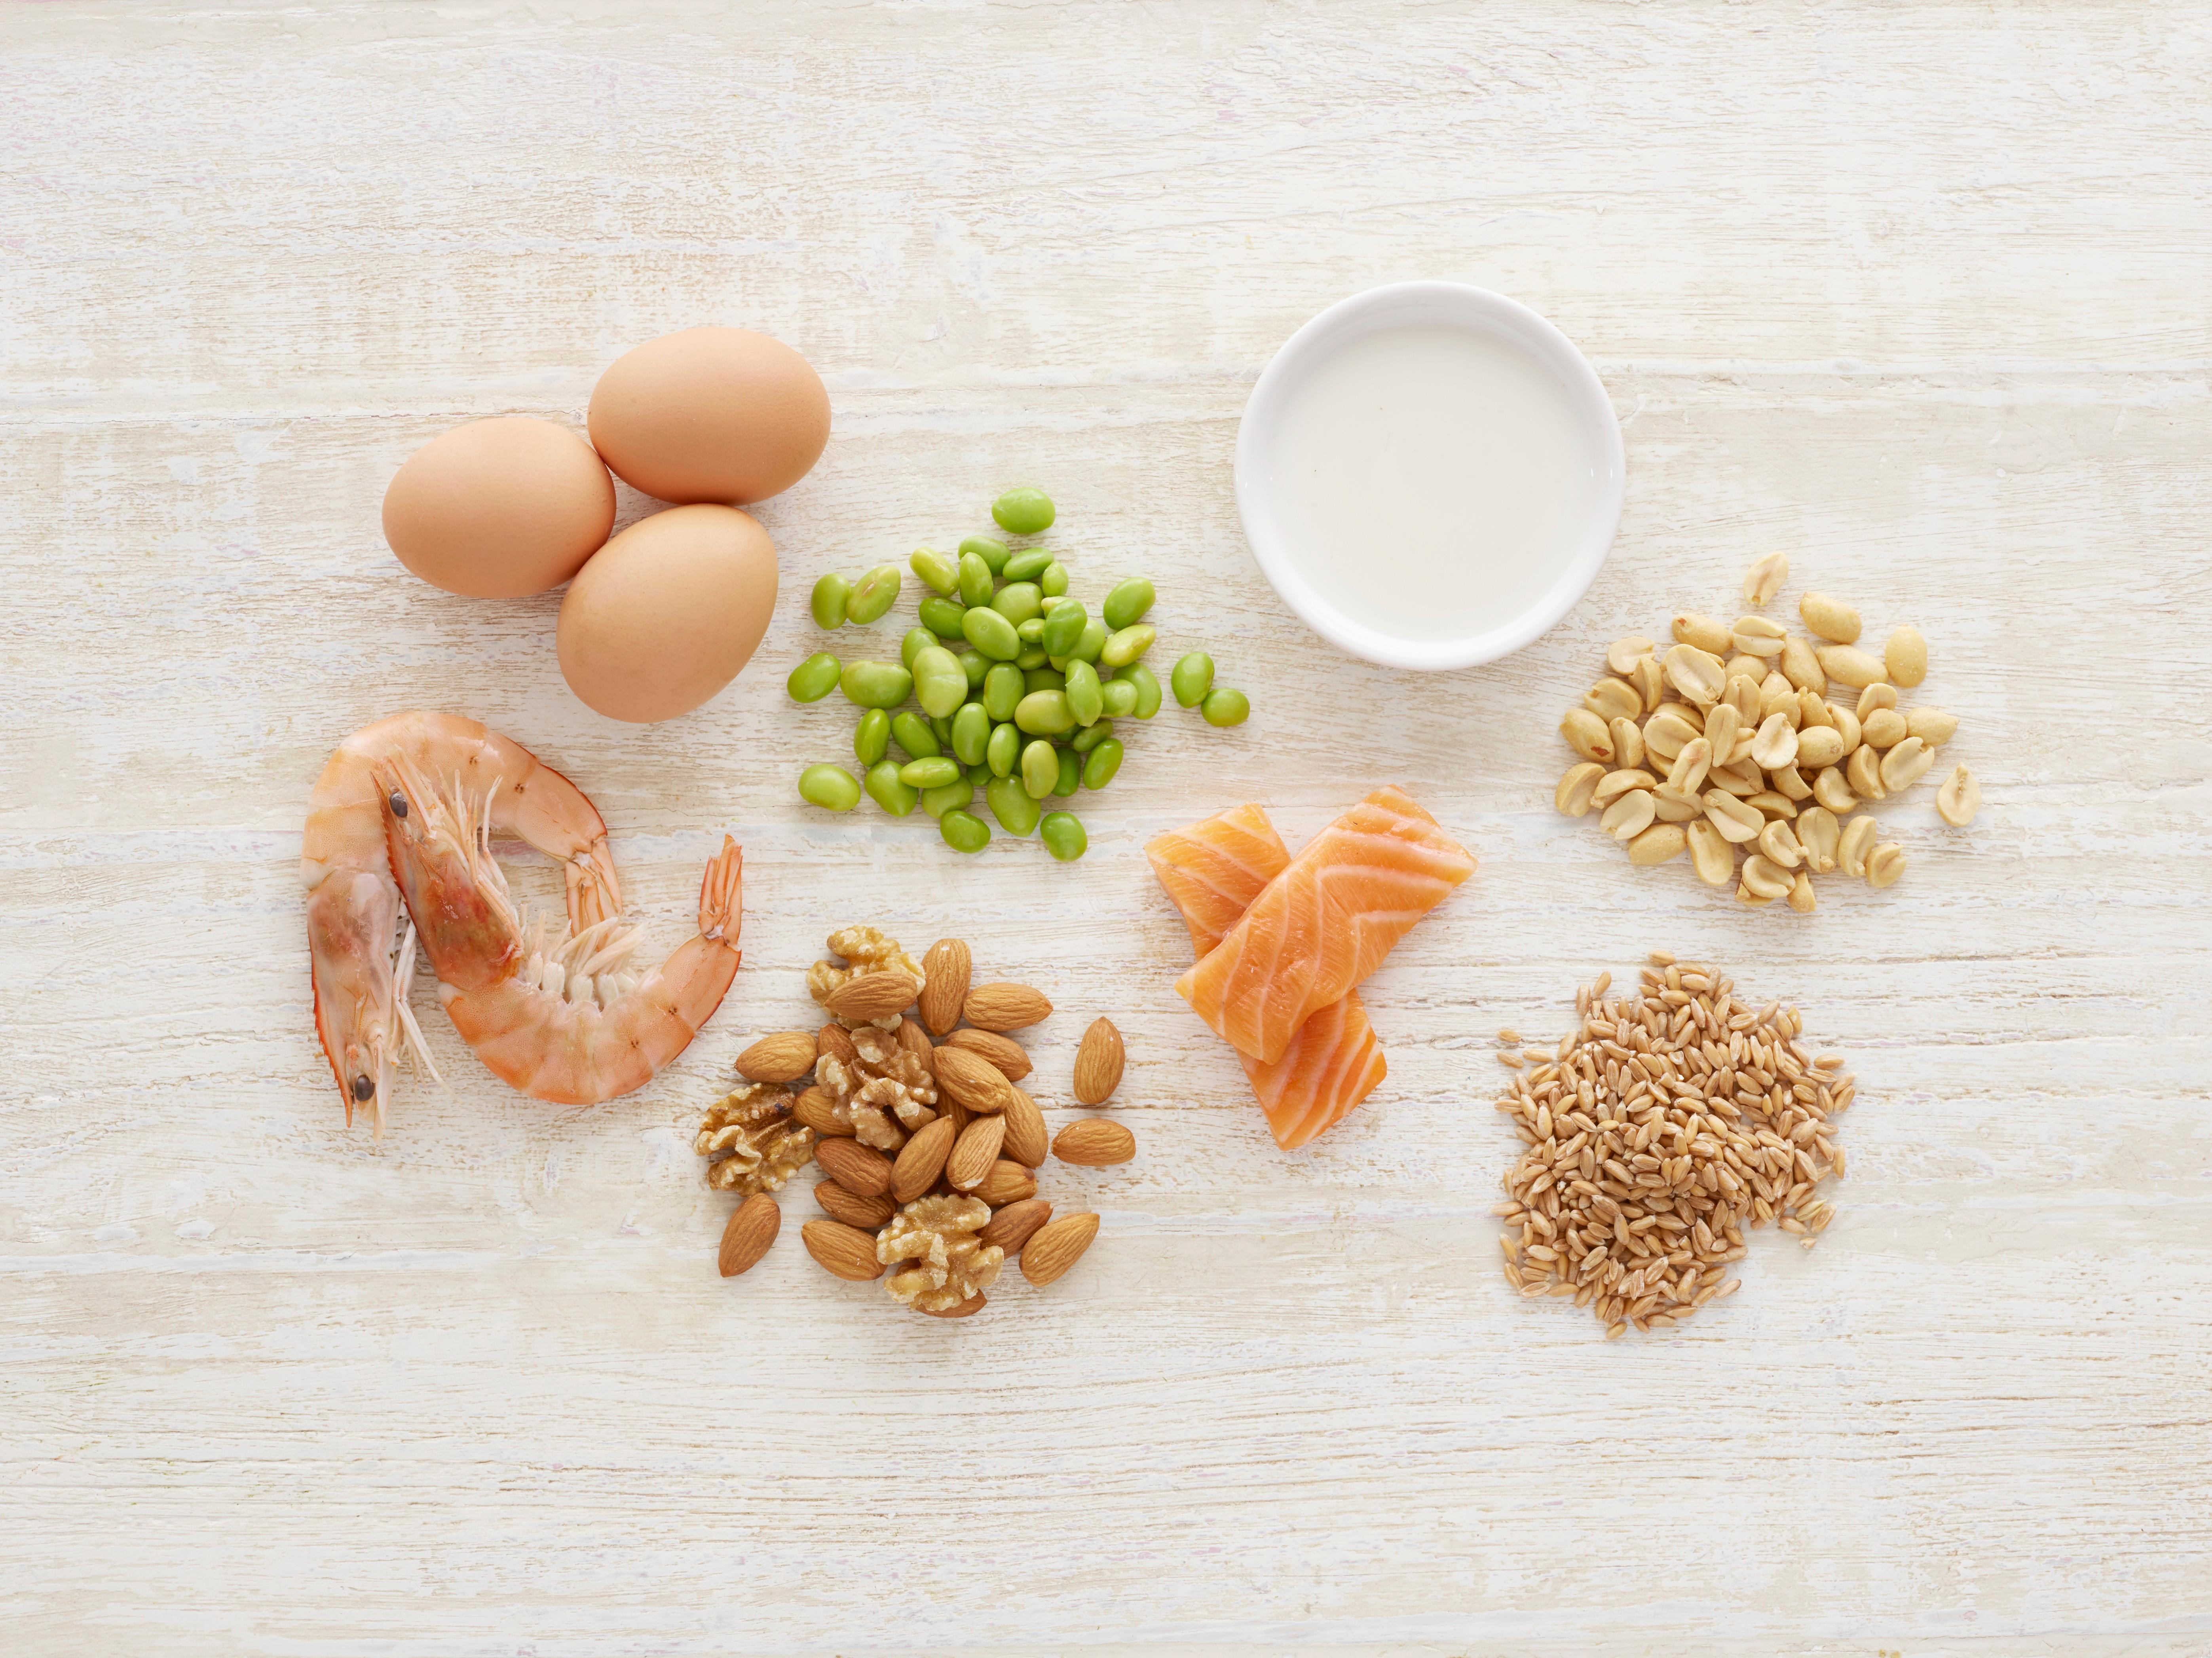 Potentially allergenic foods